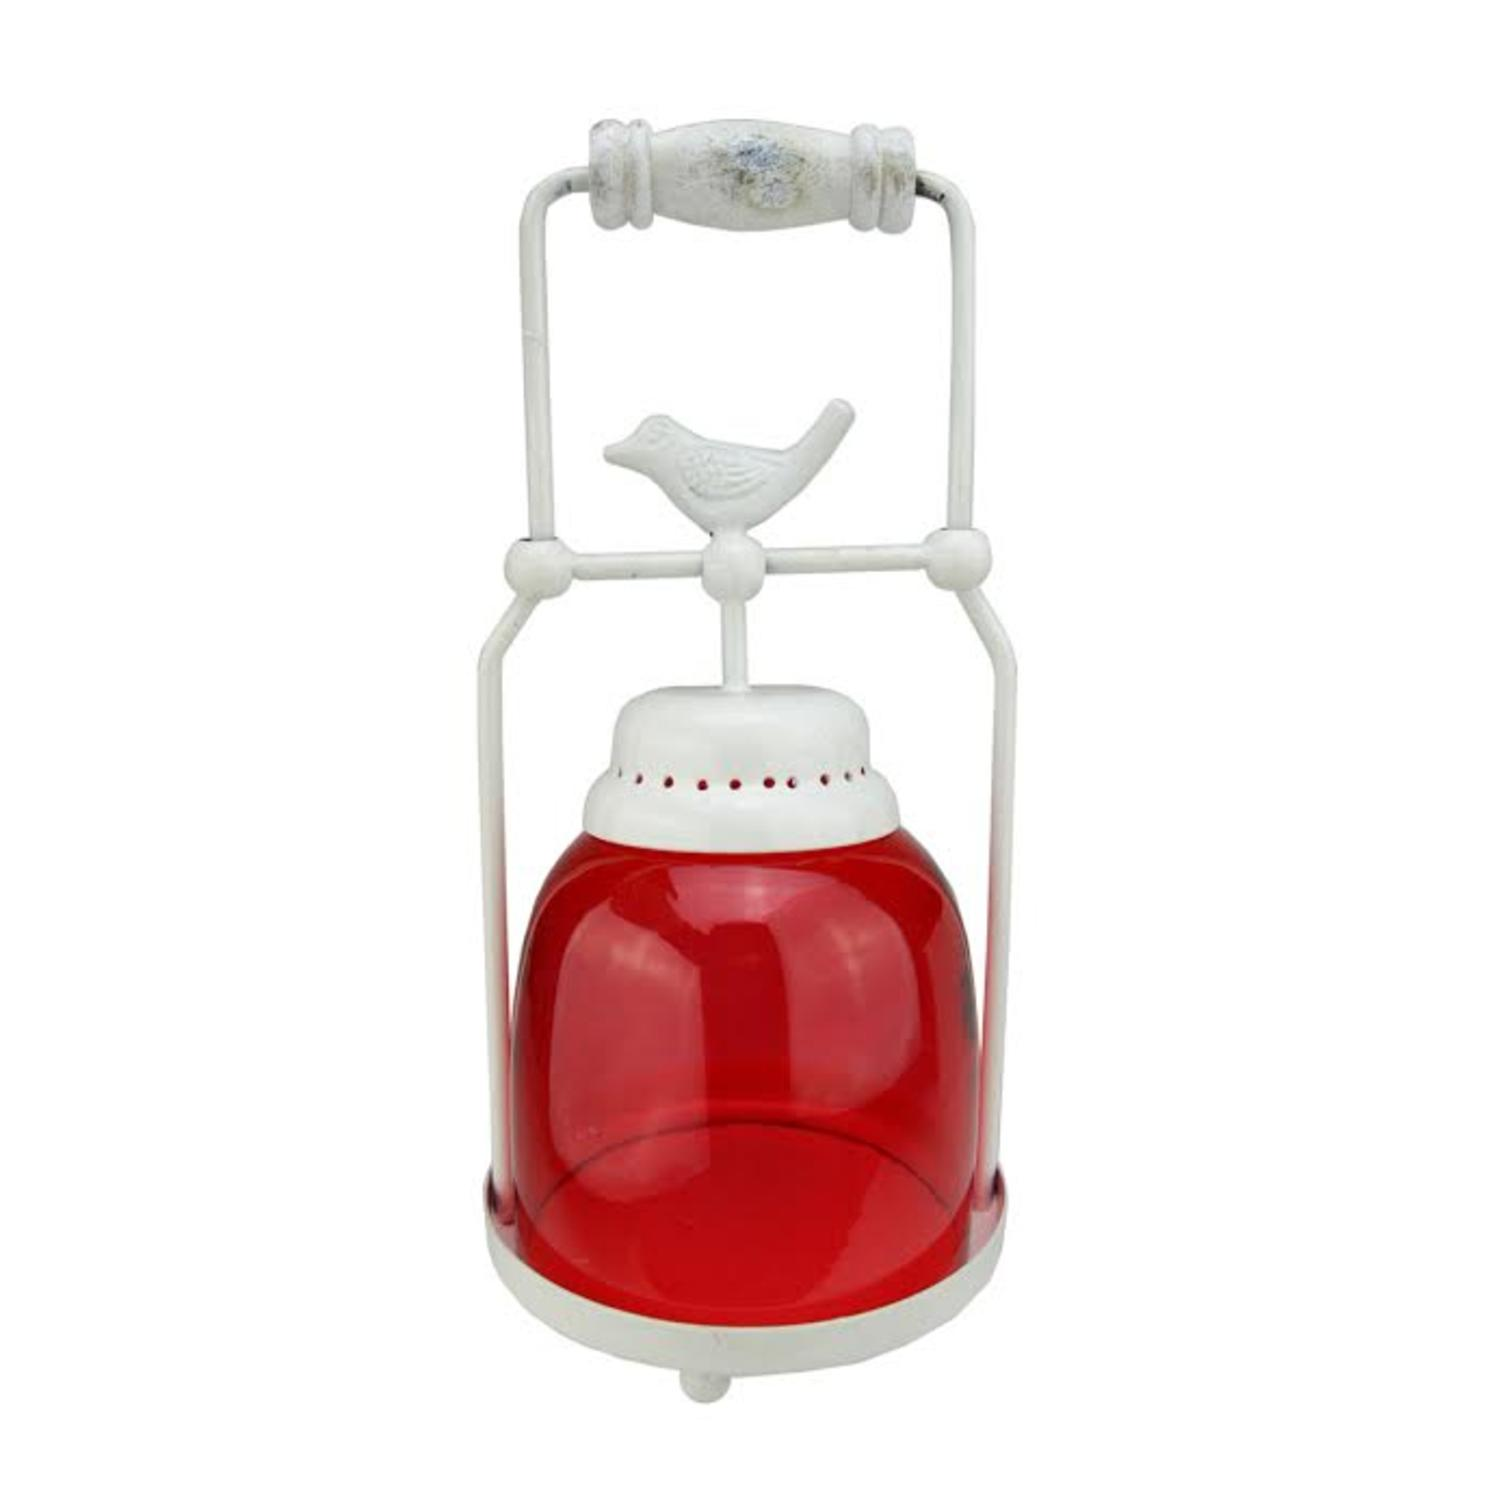 ''11.75'''' Decorative Red and White Antique Inspired Avian Bird Glass VOTIVE CANDLE Holder Lantern''